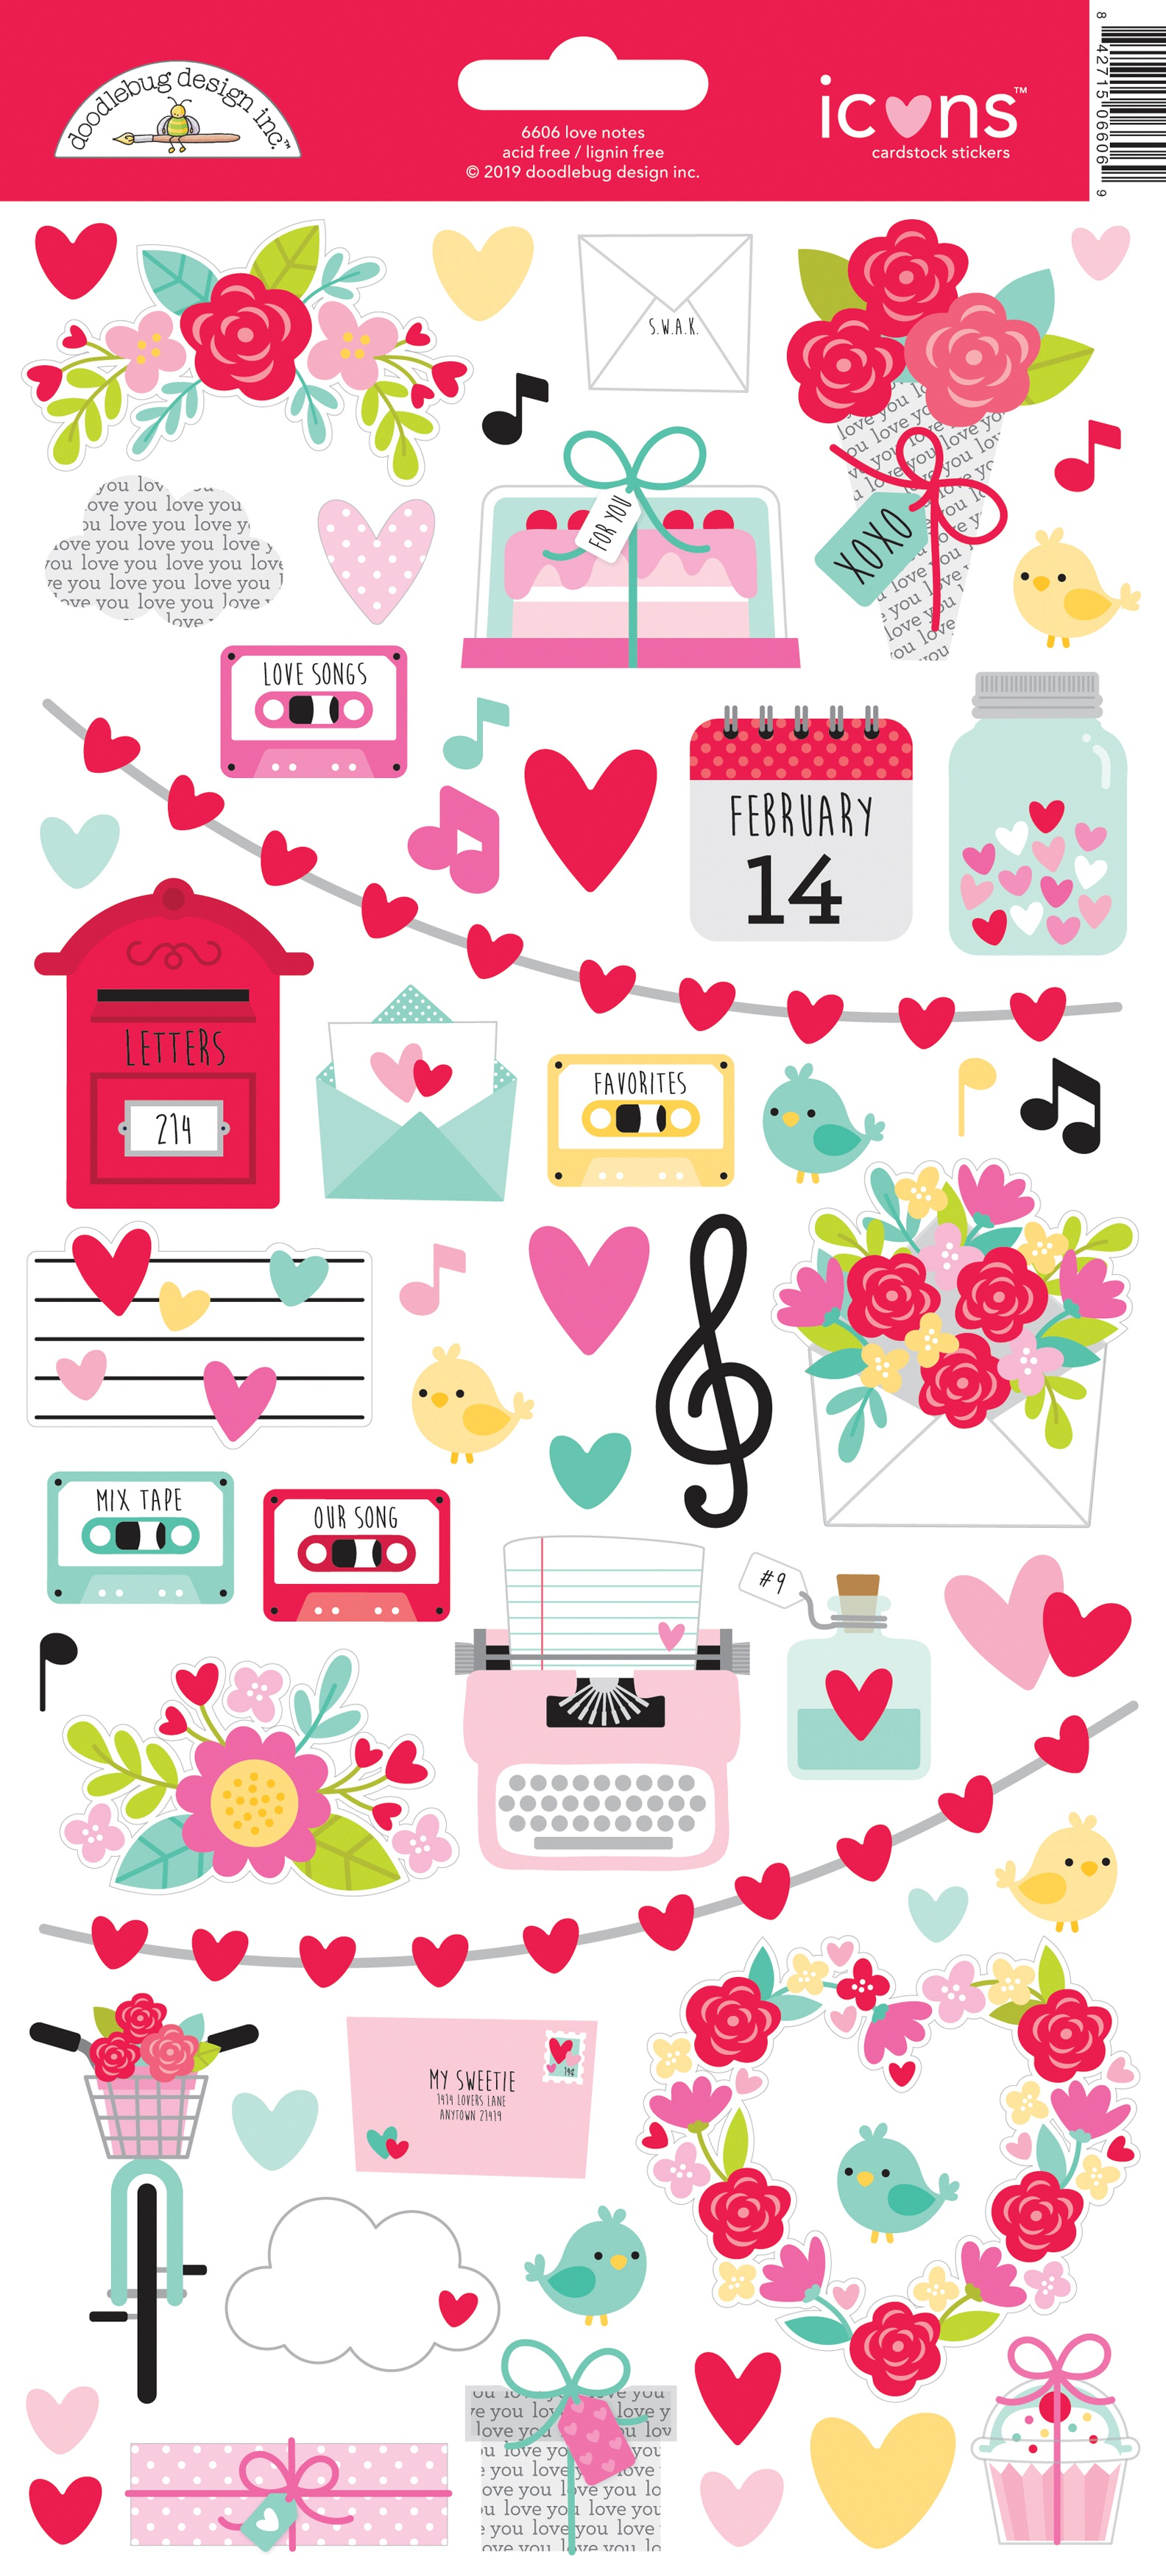 Doodlebug Cardstock Stickers 6X13-Love Notes Icons